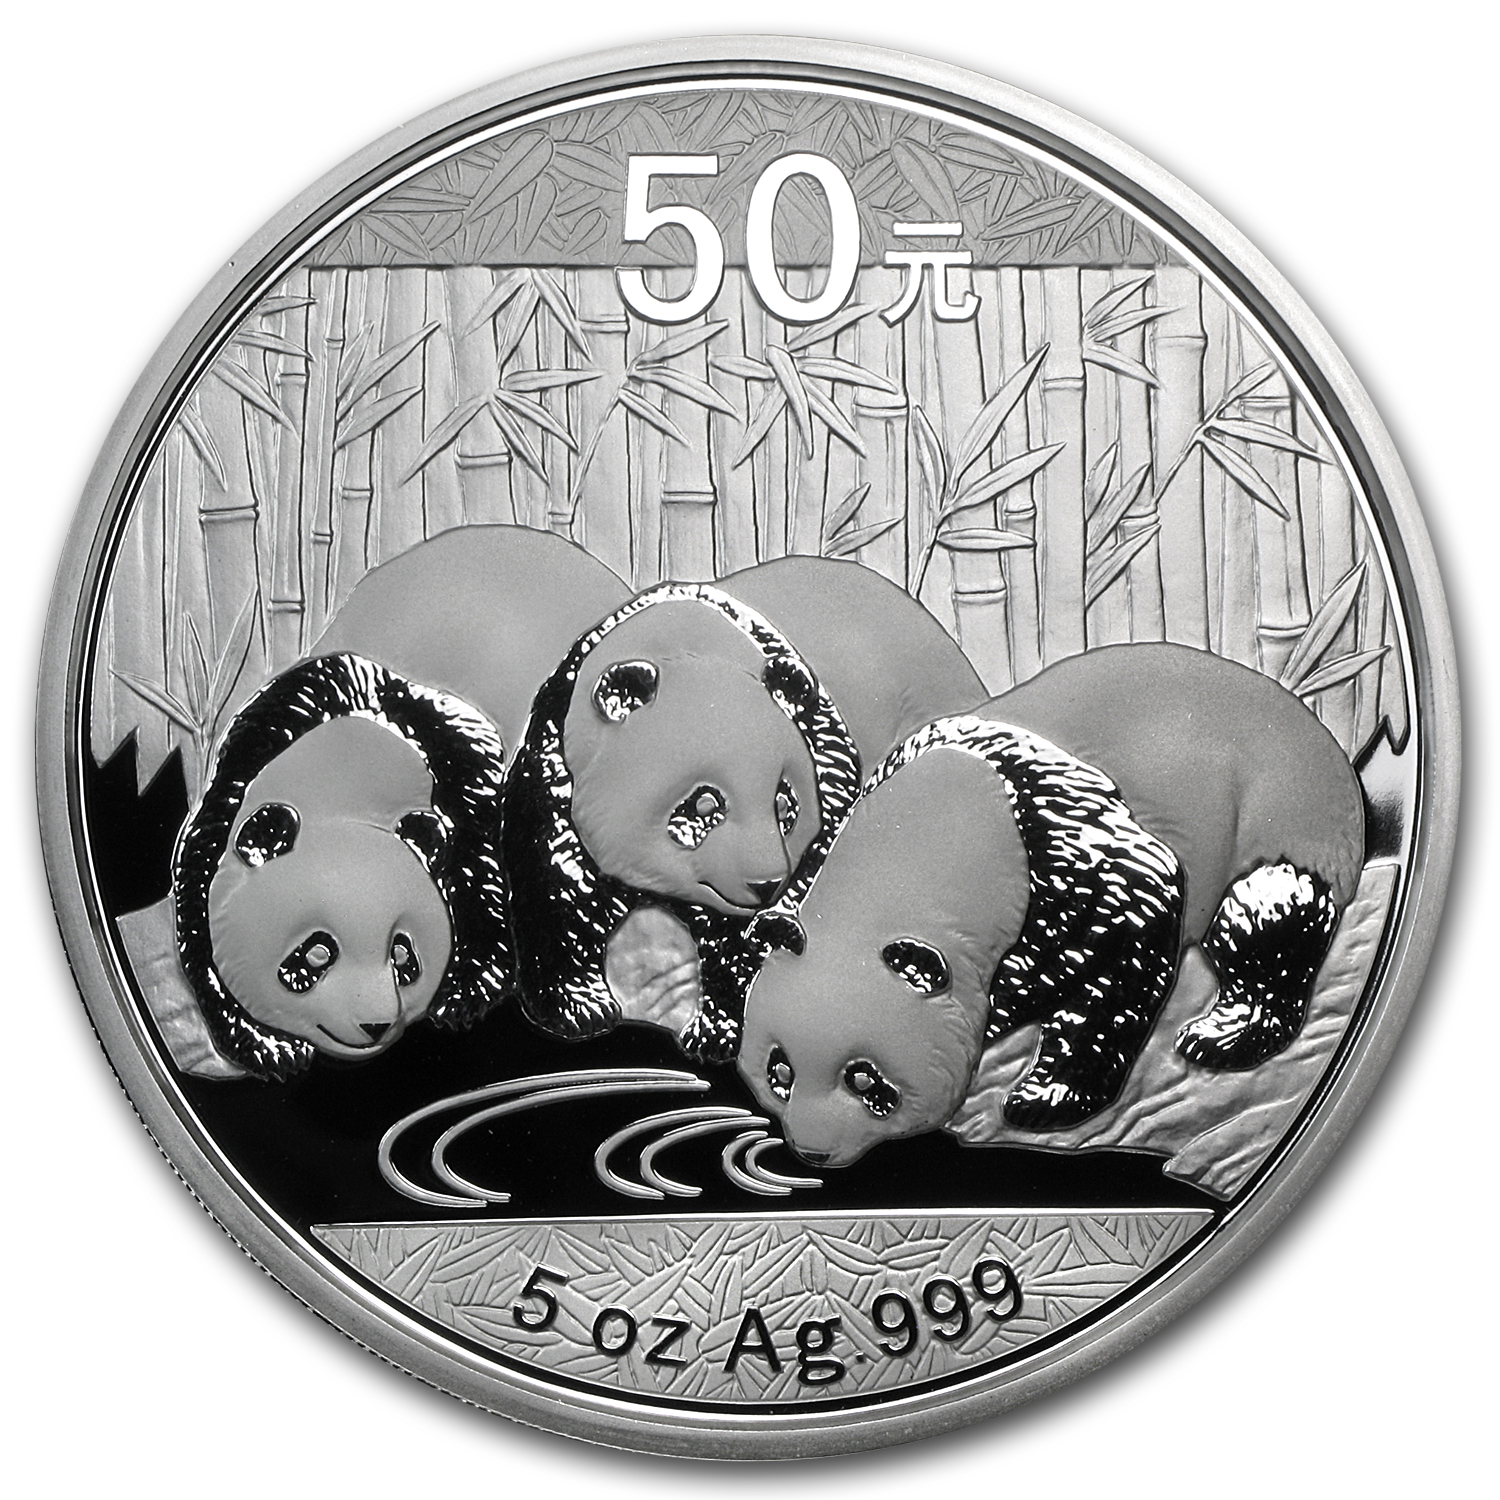 2013 5 oz Proof Silver Panda (w/Box & CoA)